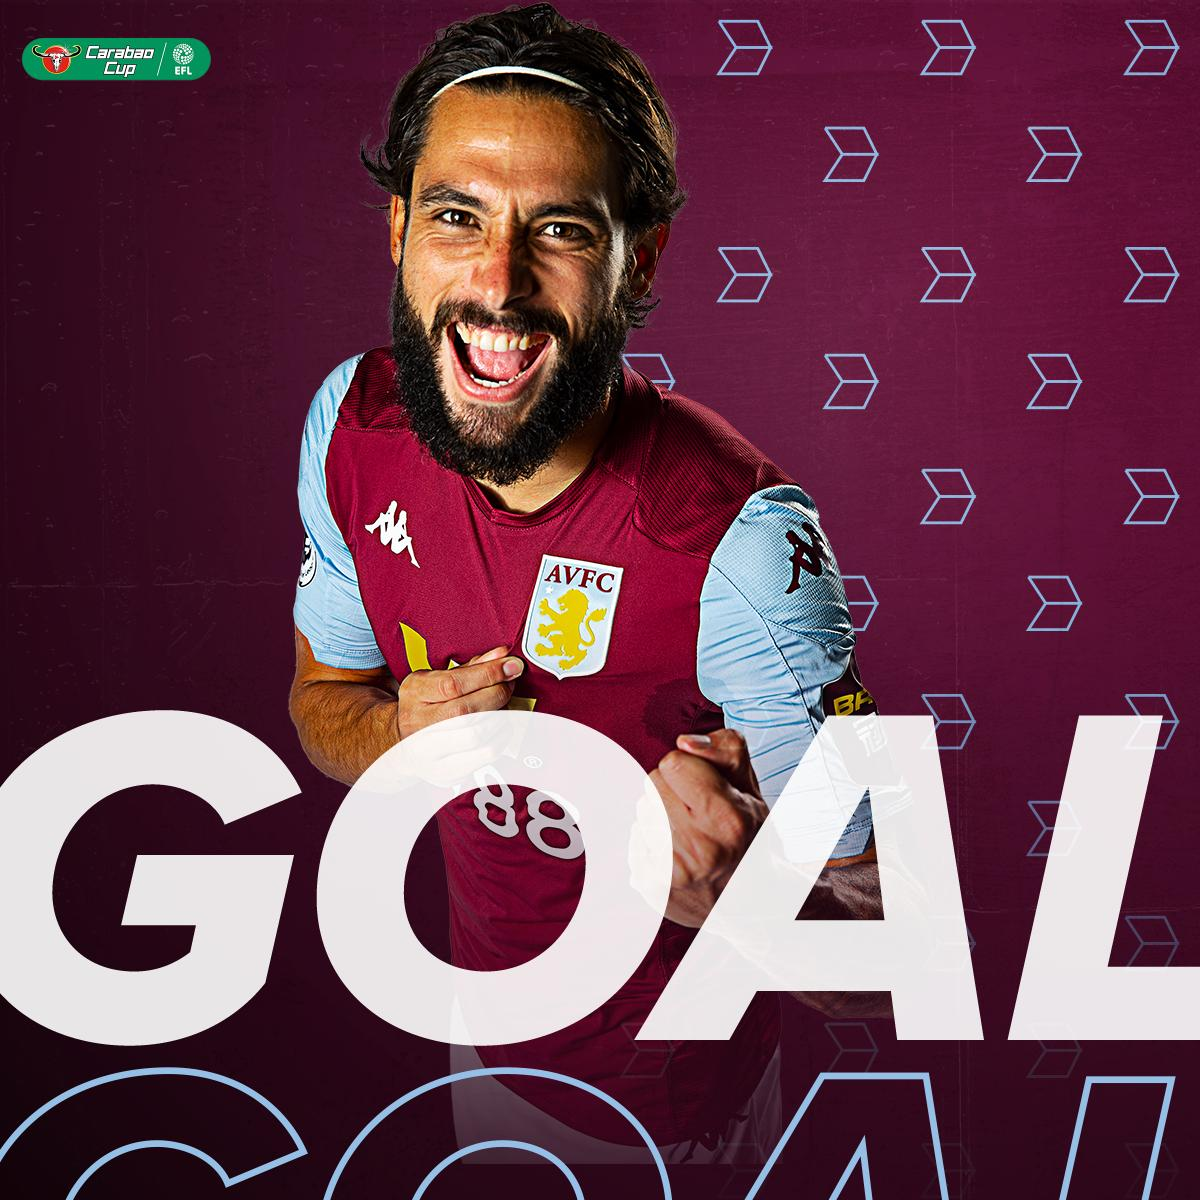 GOOALL!  Villa get their breakthrough. The ball spills out to @KingJota, who blasts home on the half volley!  ⚪️🔵 0-1 🦁  #AVFC #CarabaoCup https://t.co/0zYQb5UtsD